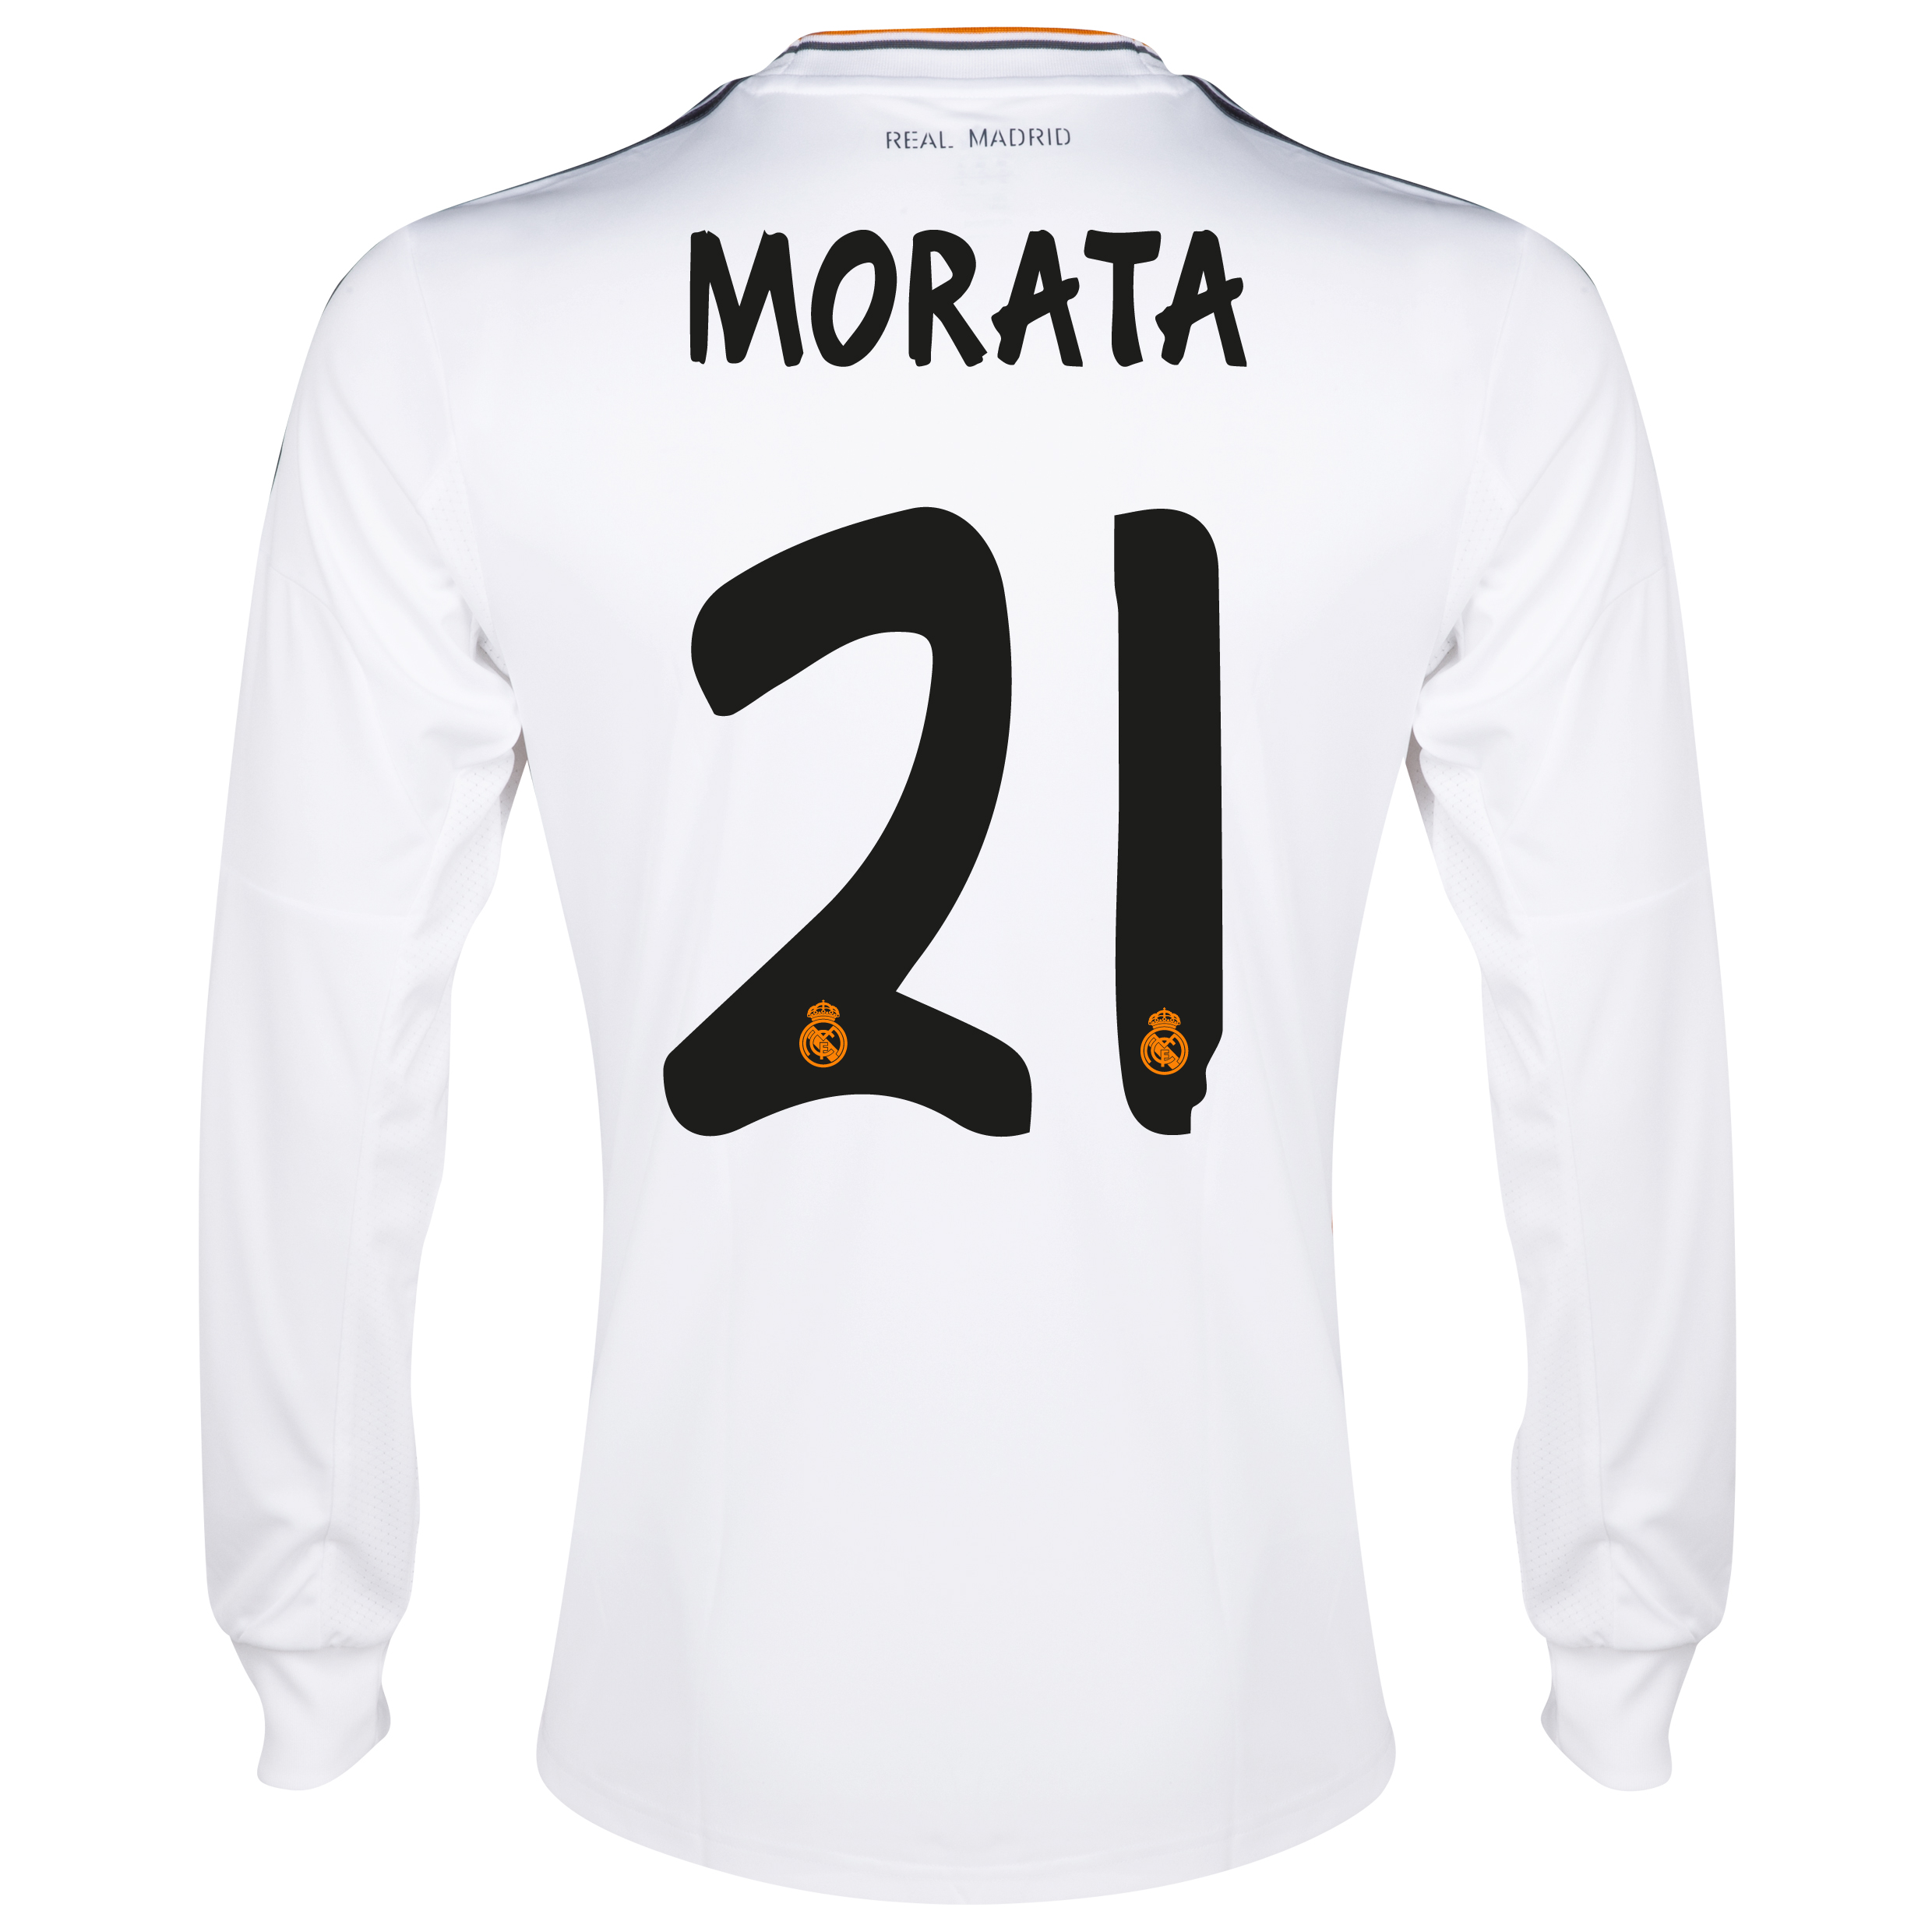 Real Madrid Home Shirt 2013/14 - Long Sleeve with Morata 29 printing